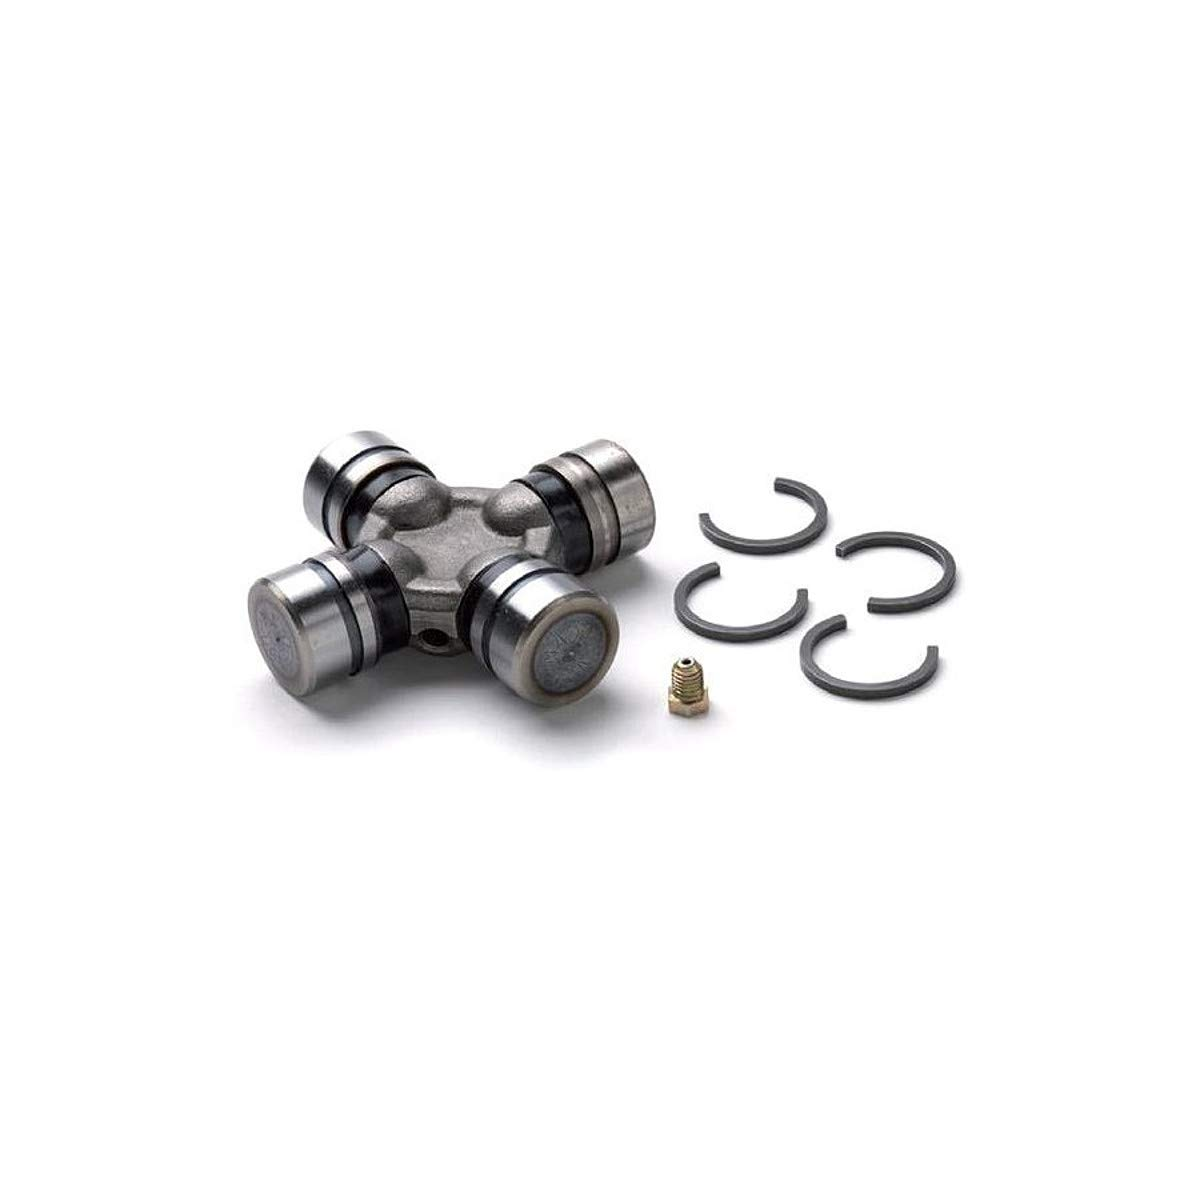 U-JOINT KIT for POLARIS 500 ATP 4x4 2004 FRONT DRIVE SHAFT//AXLE UNIVERSAL JOINT